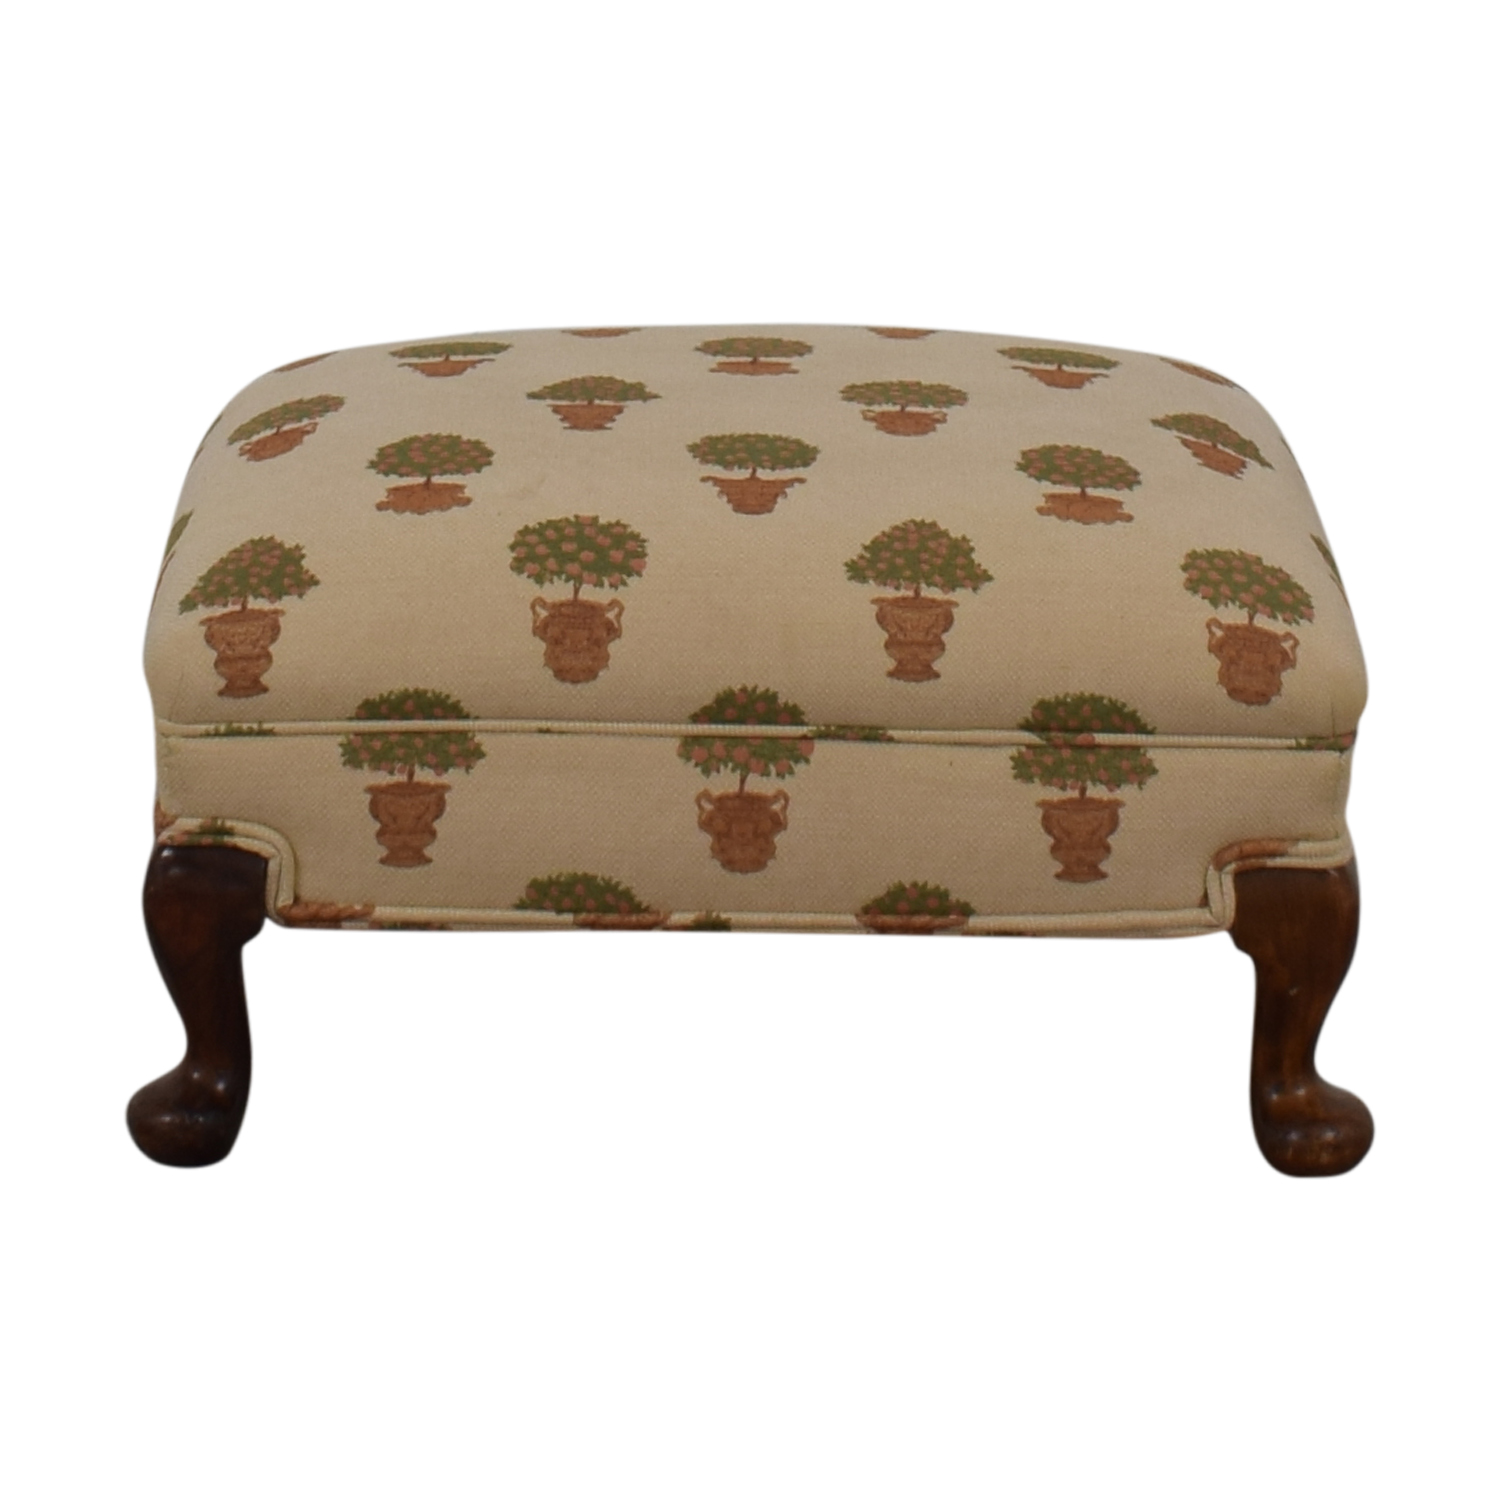 ABC Carpet & Home ABC Carpet & Home Ottoman nj